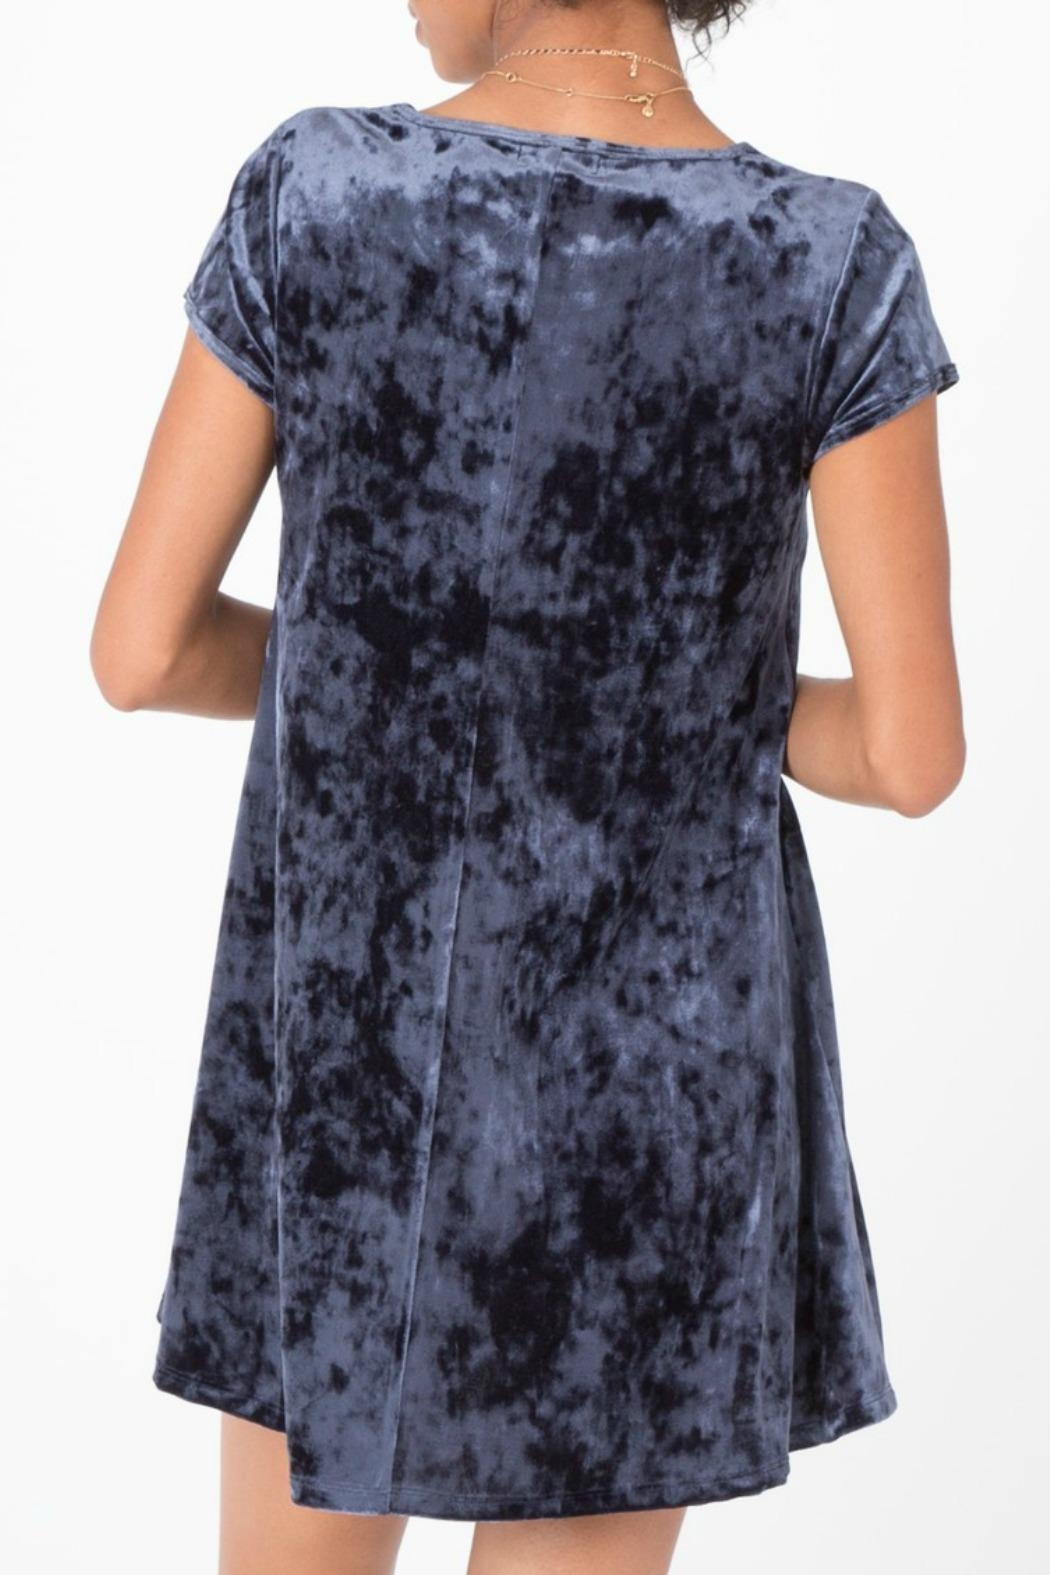 z supply Crushed Velour Dress - Side Cropped Image